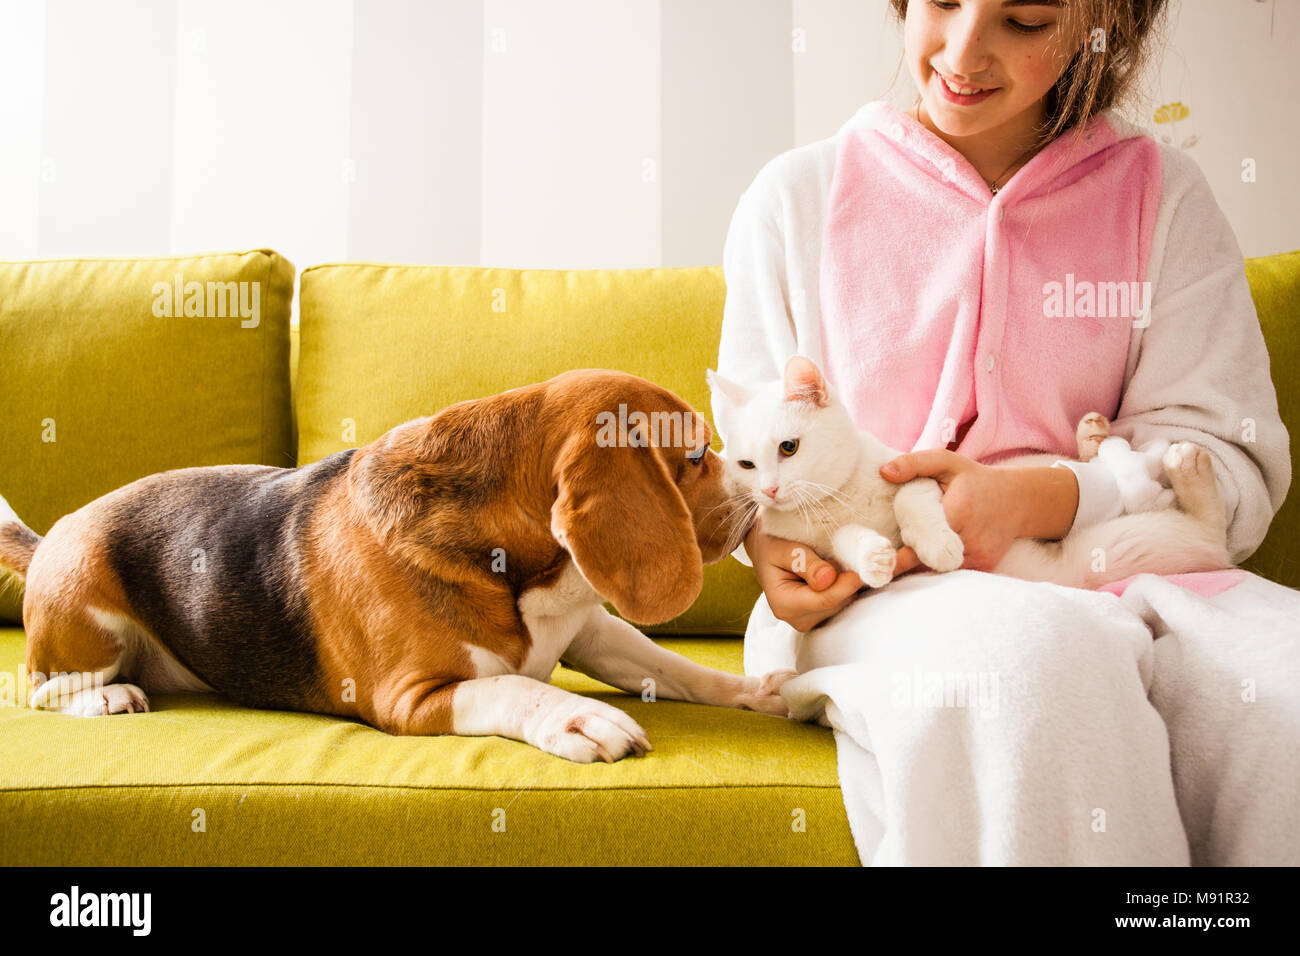 pets love each other - Stock Image